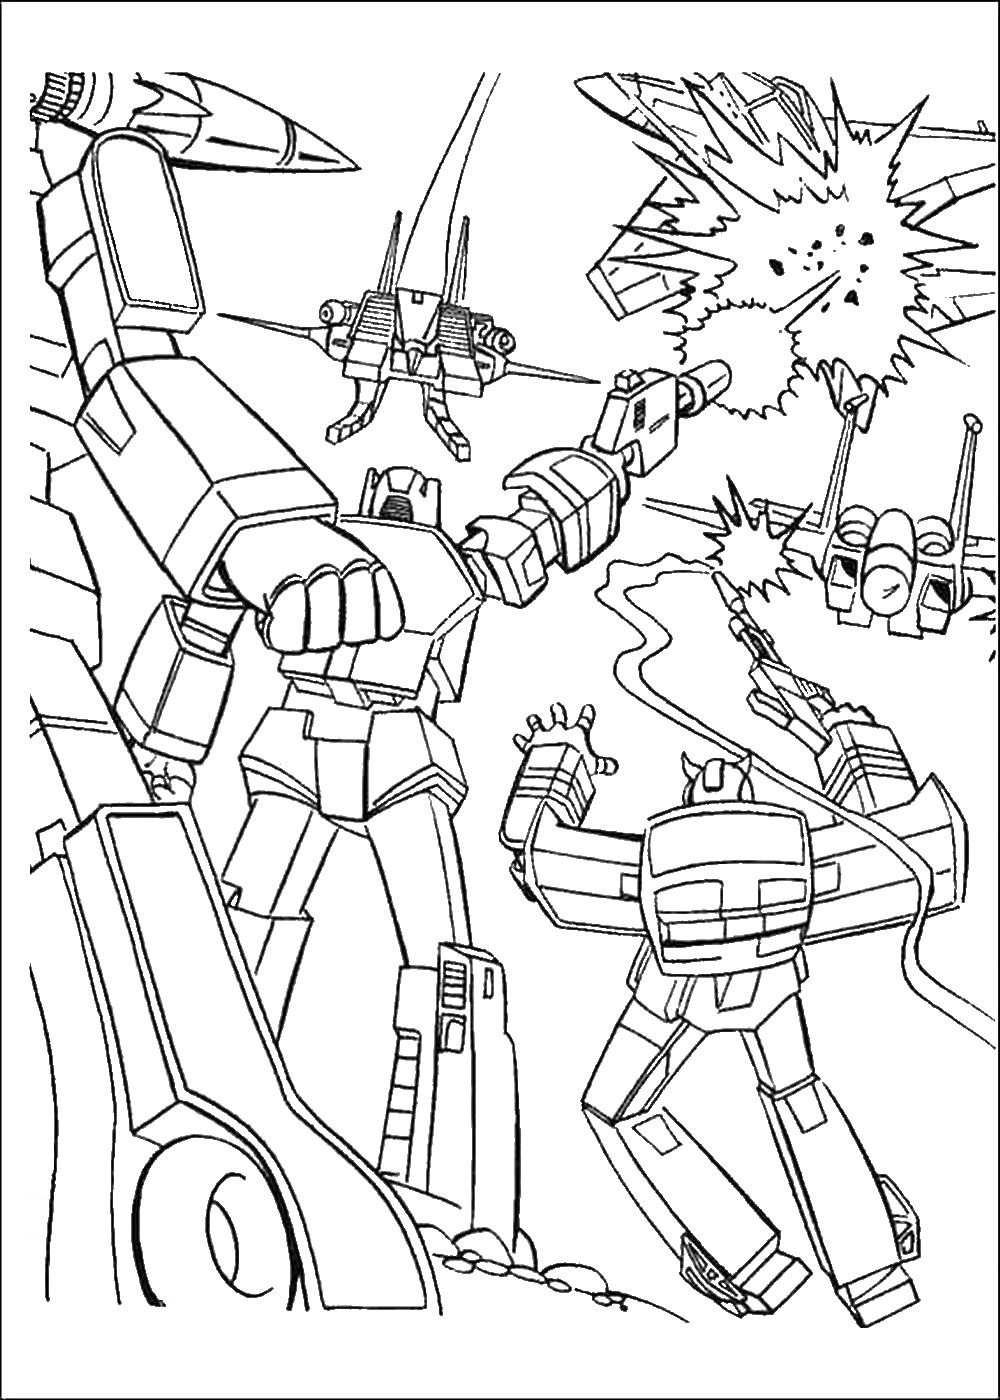 coloring pages transformers kids n funcom 33 coloring pages of transformers coloring pages transformers